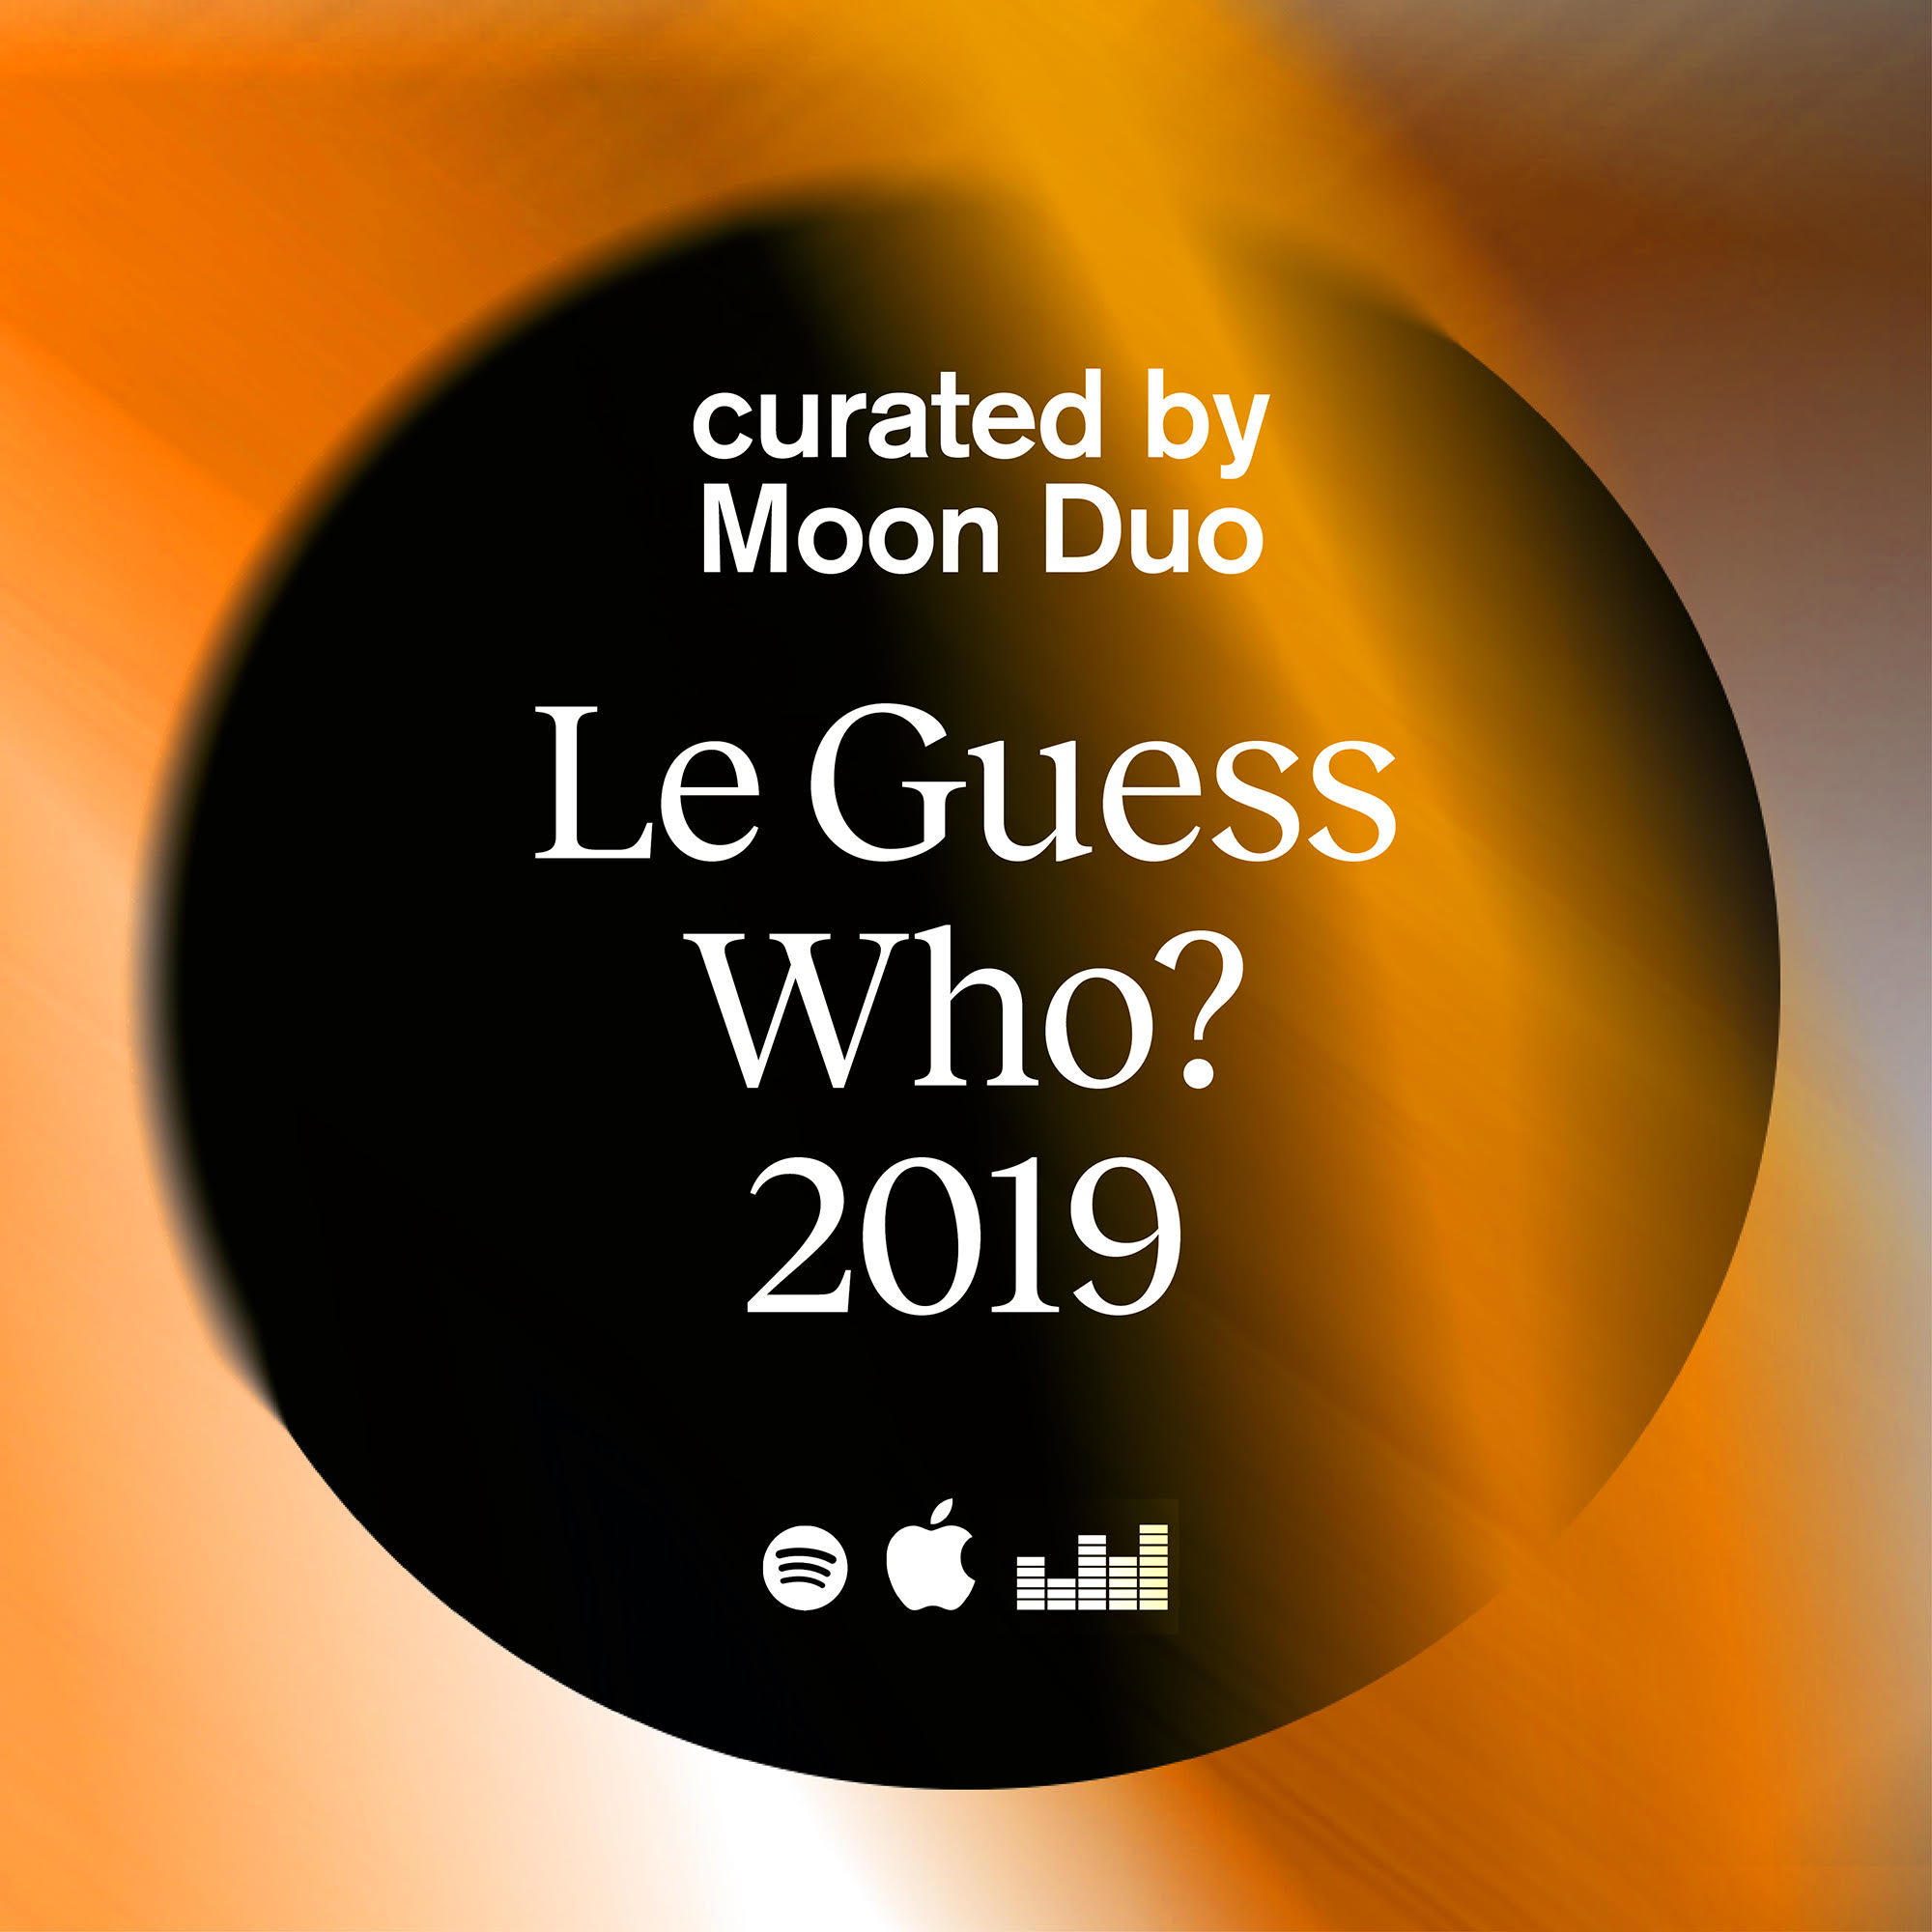 Listen to Moon Duo's personal playlist for their curation at Le Guess Who? 2019